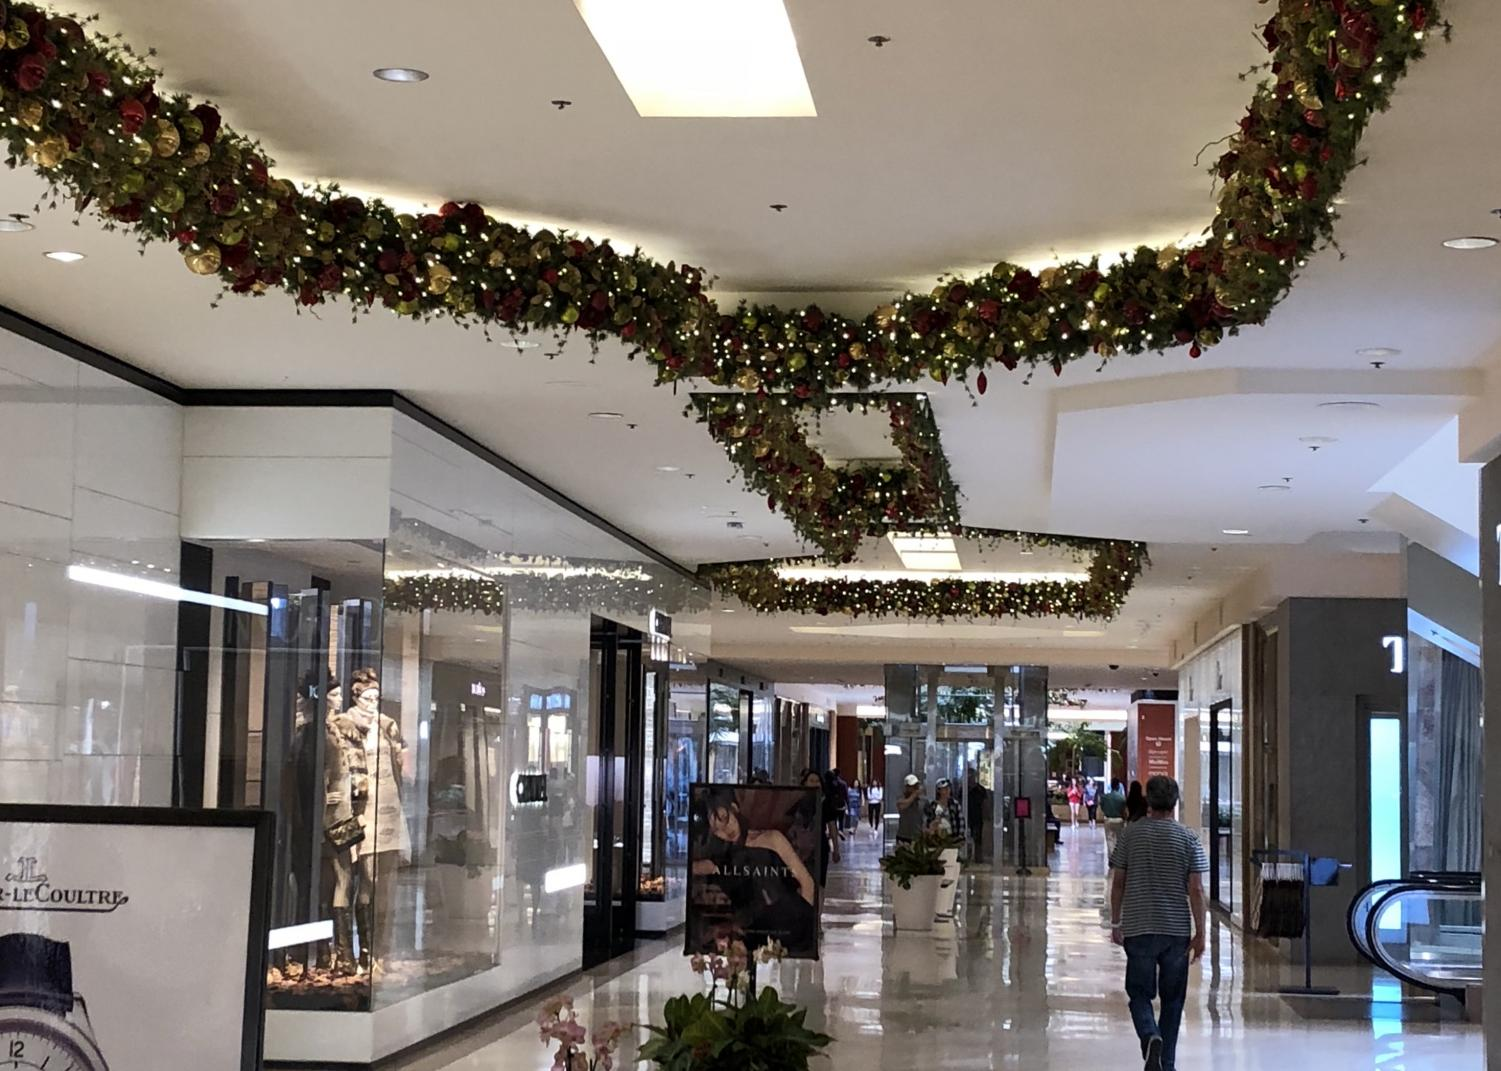 South Coast Plaza, a mall in Costa Mesa, has had their Christmas decorations up since the middle-end of October. People, however, are still waiting for their grand tree to go on display.